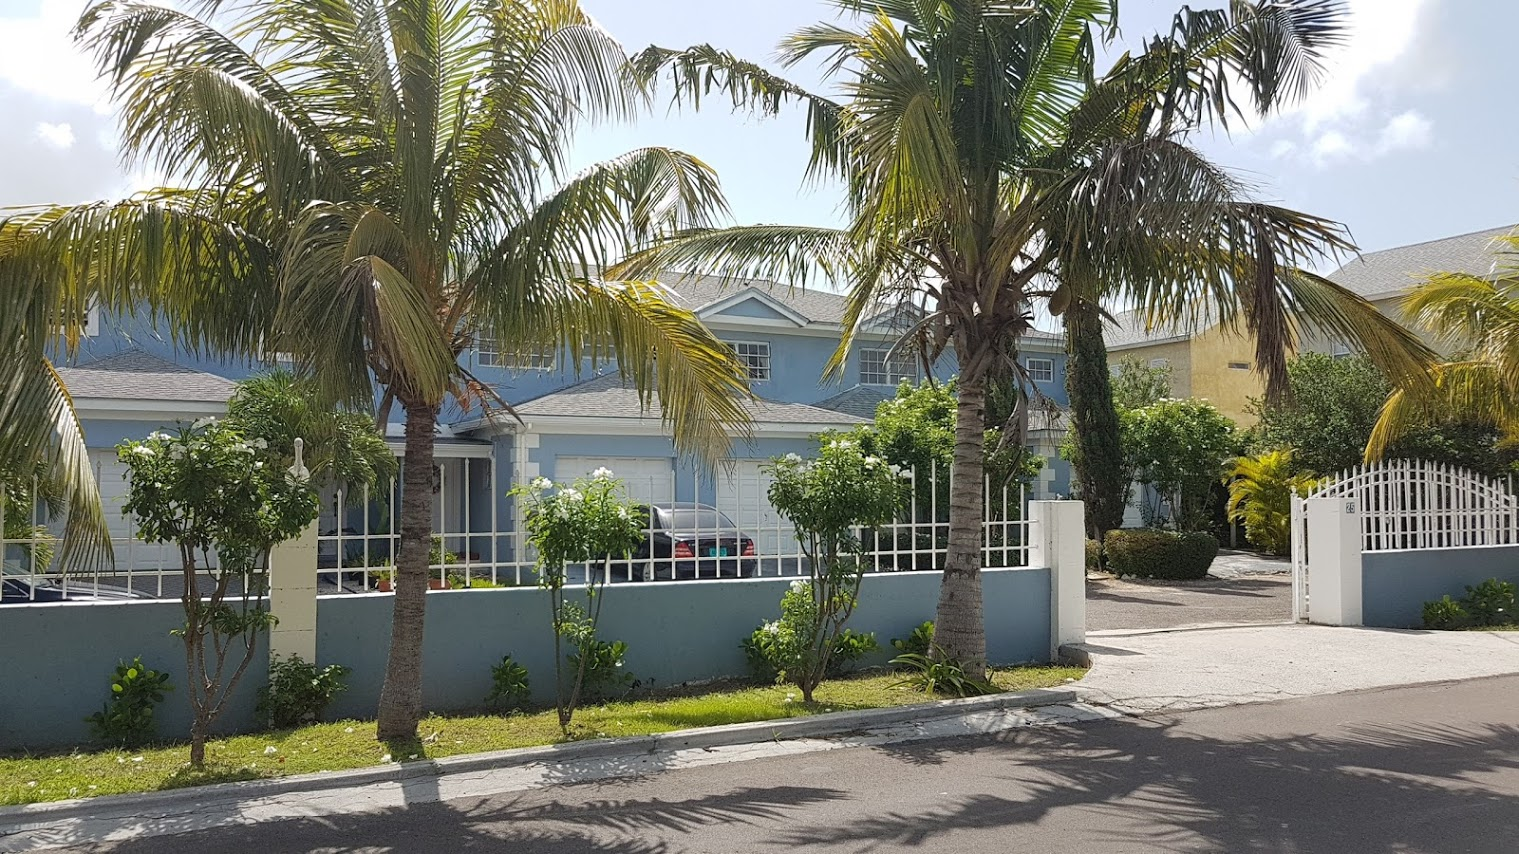 Co-op / Condo for Sale at Lot 10, Unit 3 Westridge Estates MLS31133 Westridge Estates, Westridge, Nassau And Paradise Island Bahamas